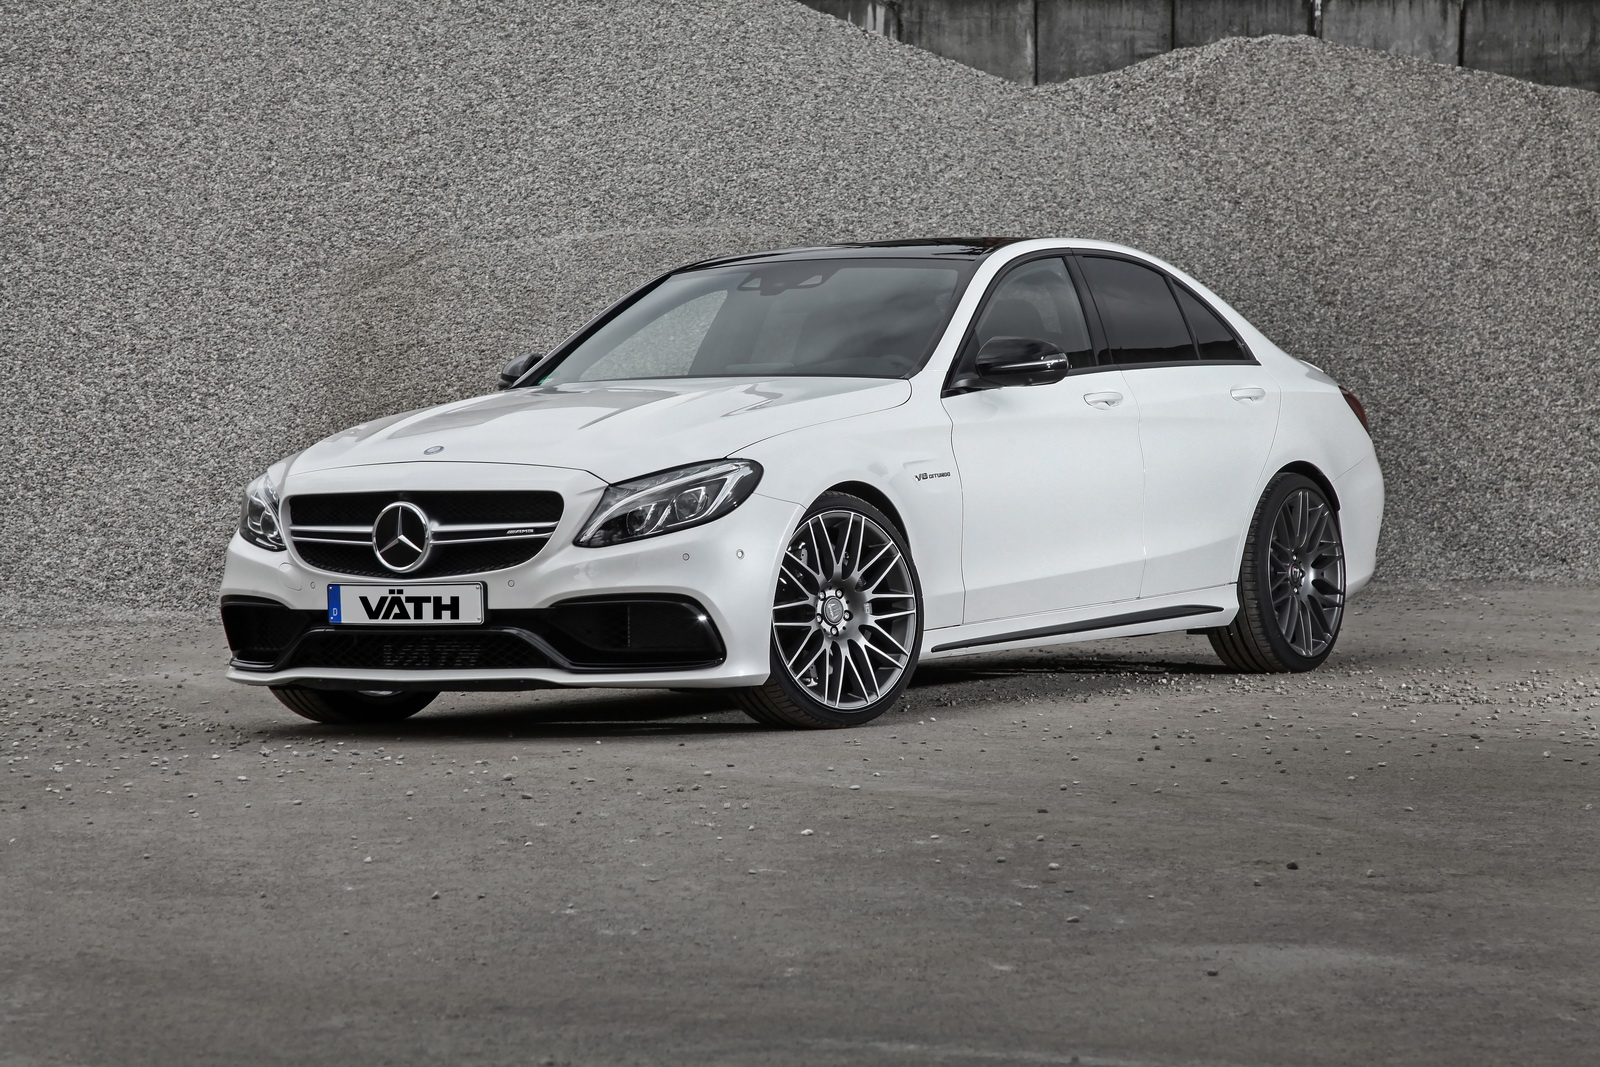 mercedes tuning vath gives mercedes amg c63 s a boost to 446kw. Black Bedroom Furniture Sets. Home Design Ideas